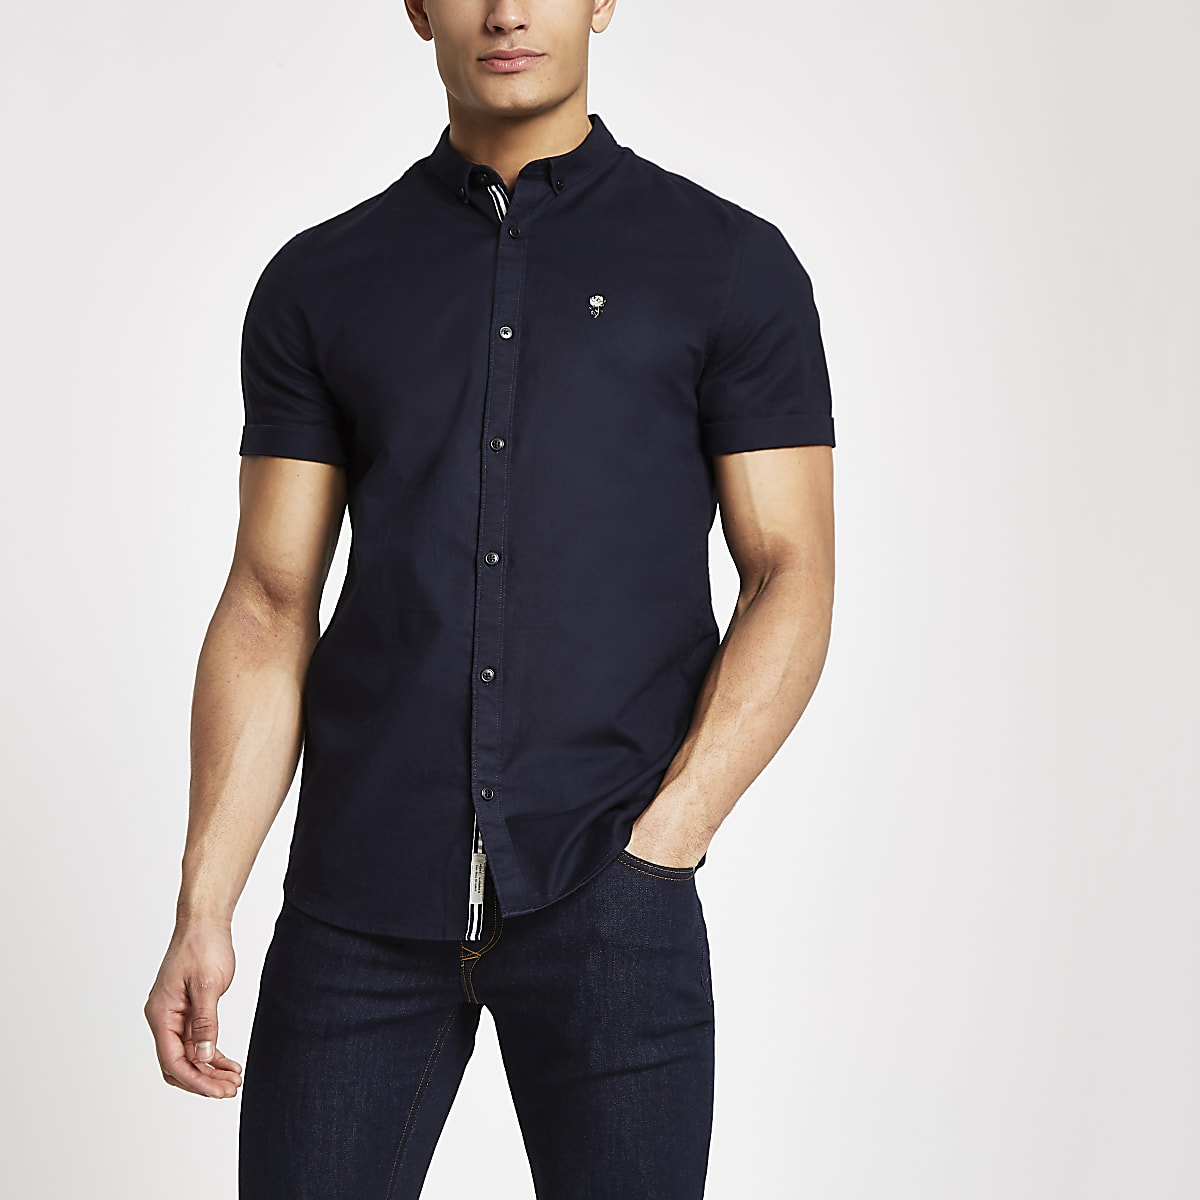 a5d590a9 Navy muscle fit rose embroidered Oxford shirt - Short Sleeve Shirts - Shirts  - men